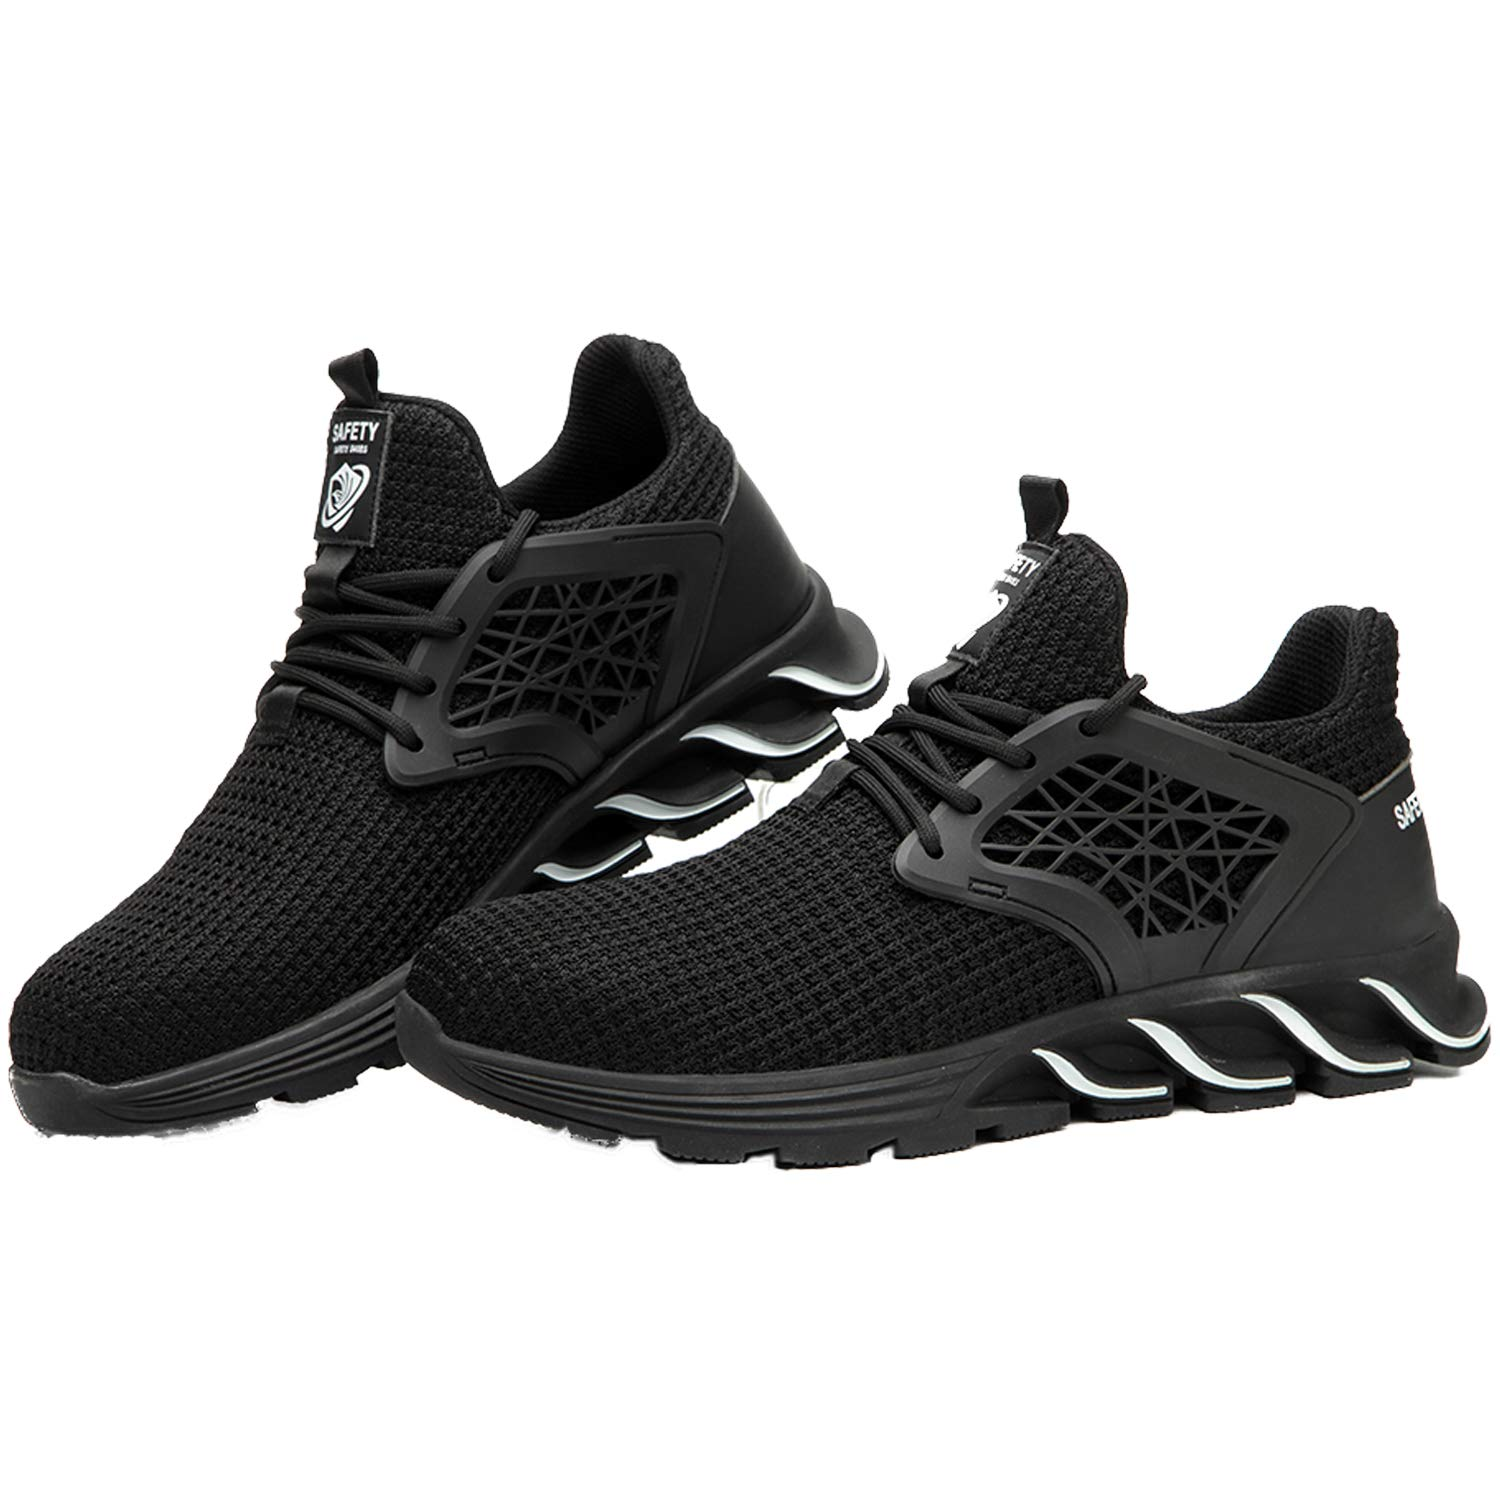 MARITONY Work Steel Toe Shoes Men Women Indestructible Safety Shoes Puncture Proof Non Slip Composite Toe Sneakers Industrial Construction Work Shoes